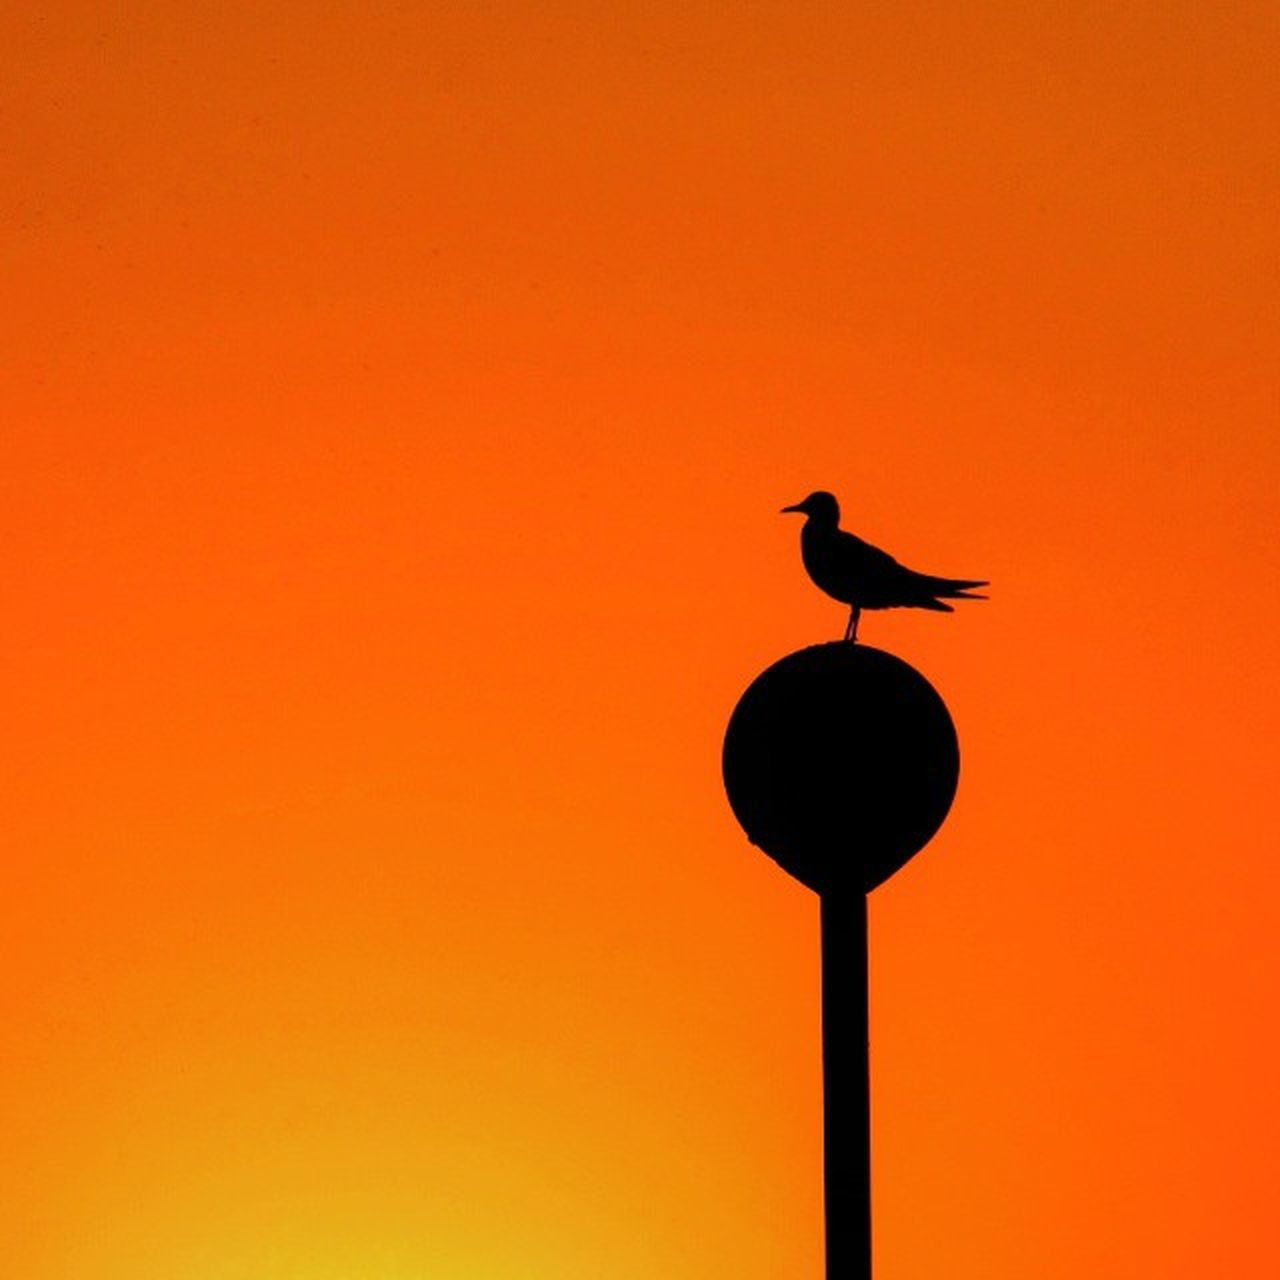 animals in the wild, bird, animal wildlife, silhouette, animal themes, perching, sunset, no people, low angle view, one animal, outdoors, nature, raven - bird, stork, day